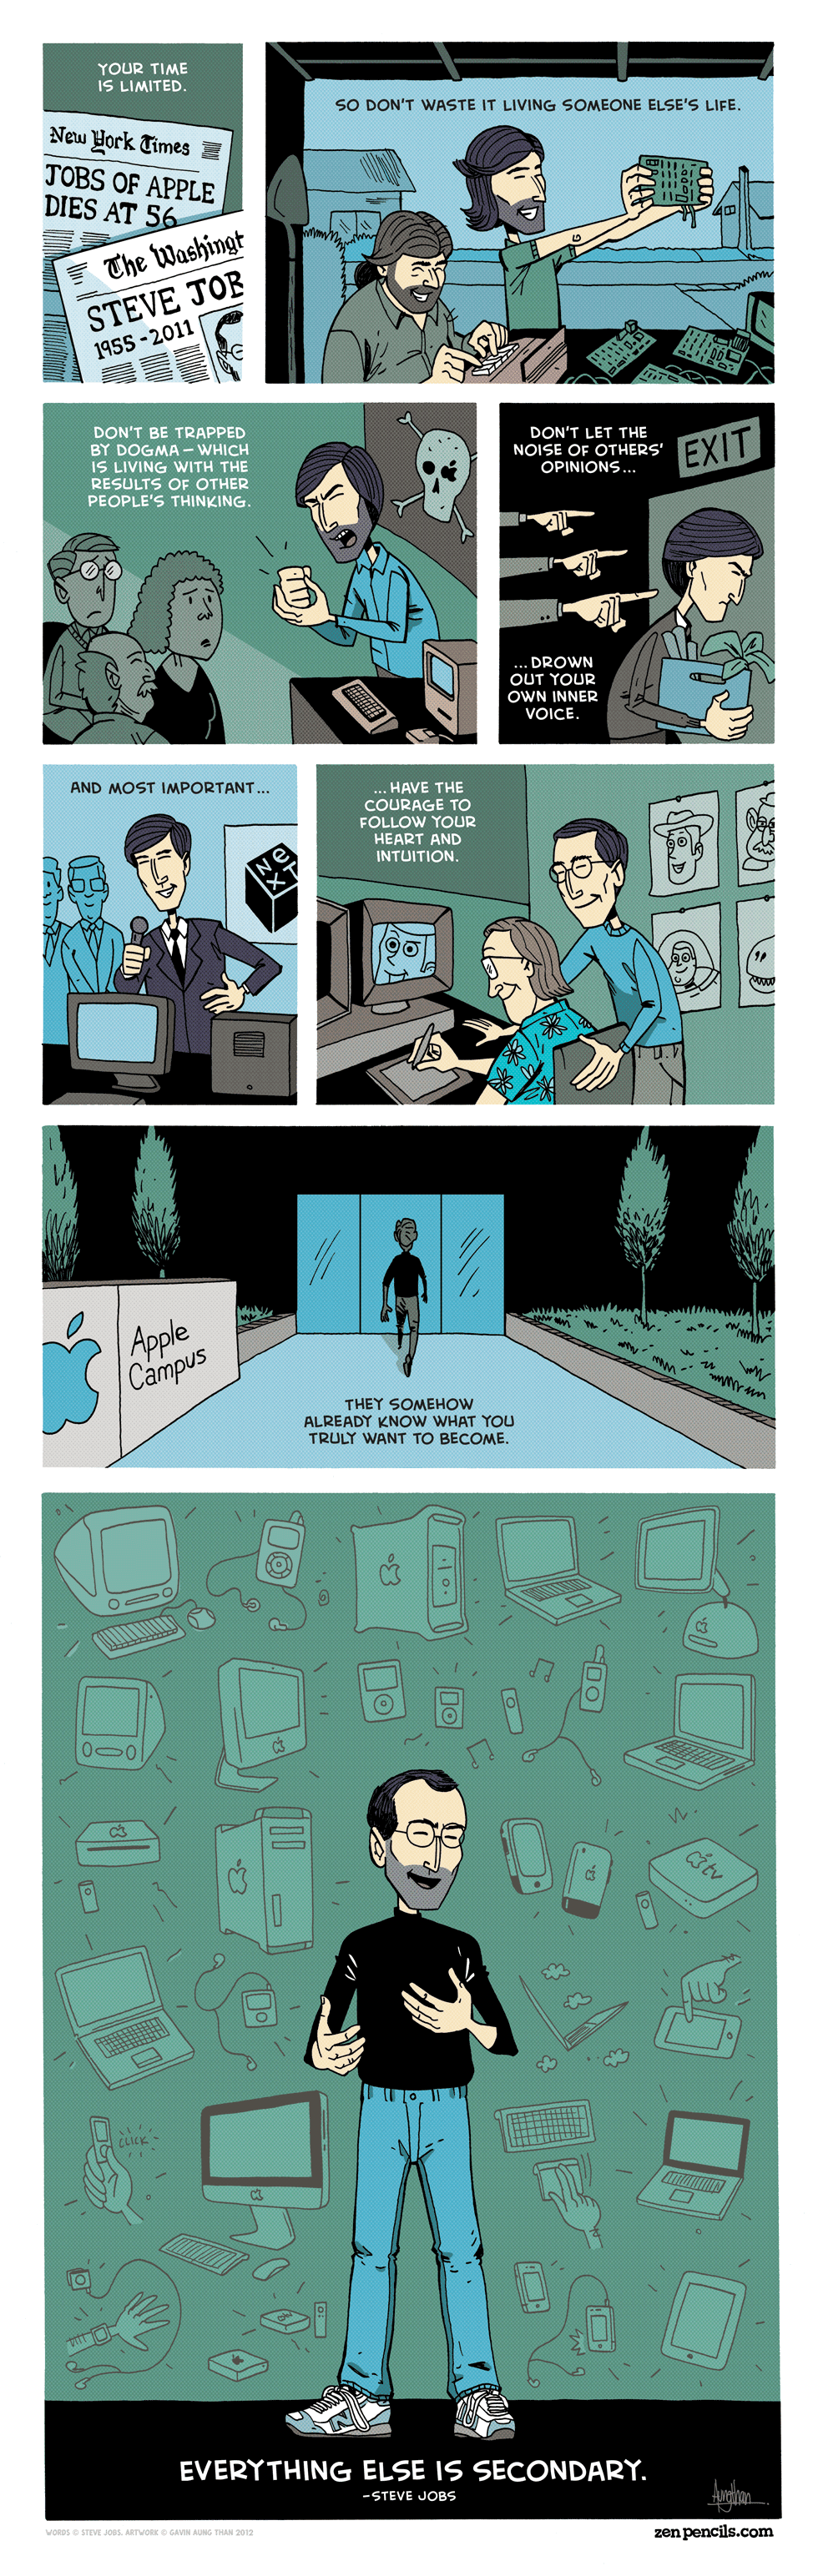 Everything Else Is Secondary - Steve Jobs illustrated quote by ZenPencils